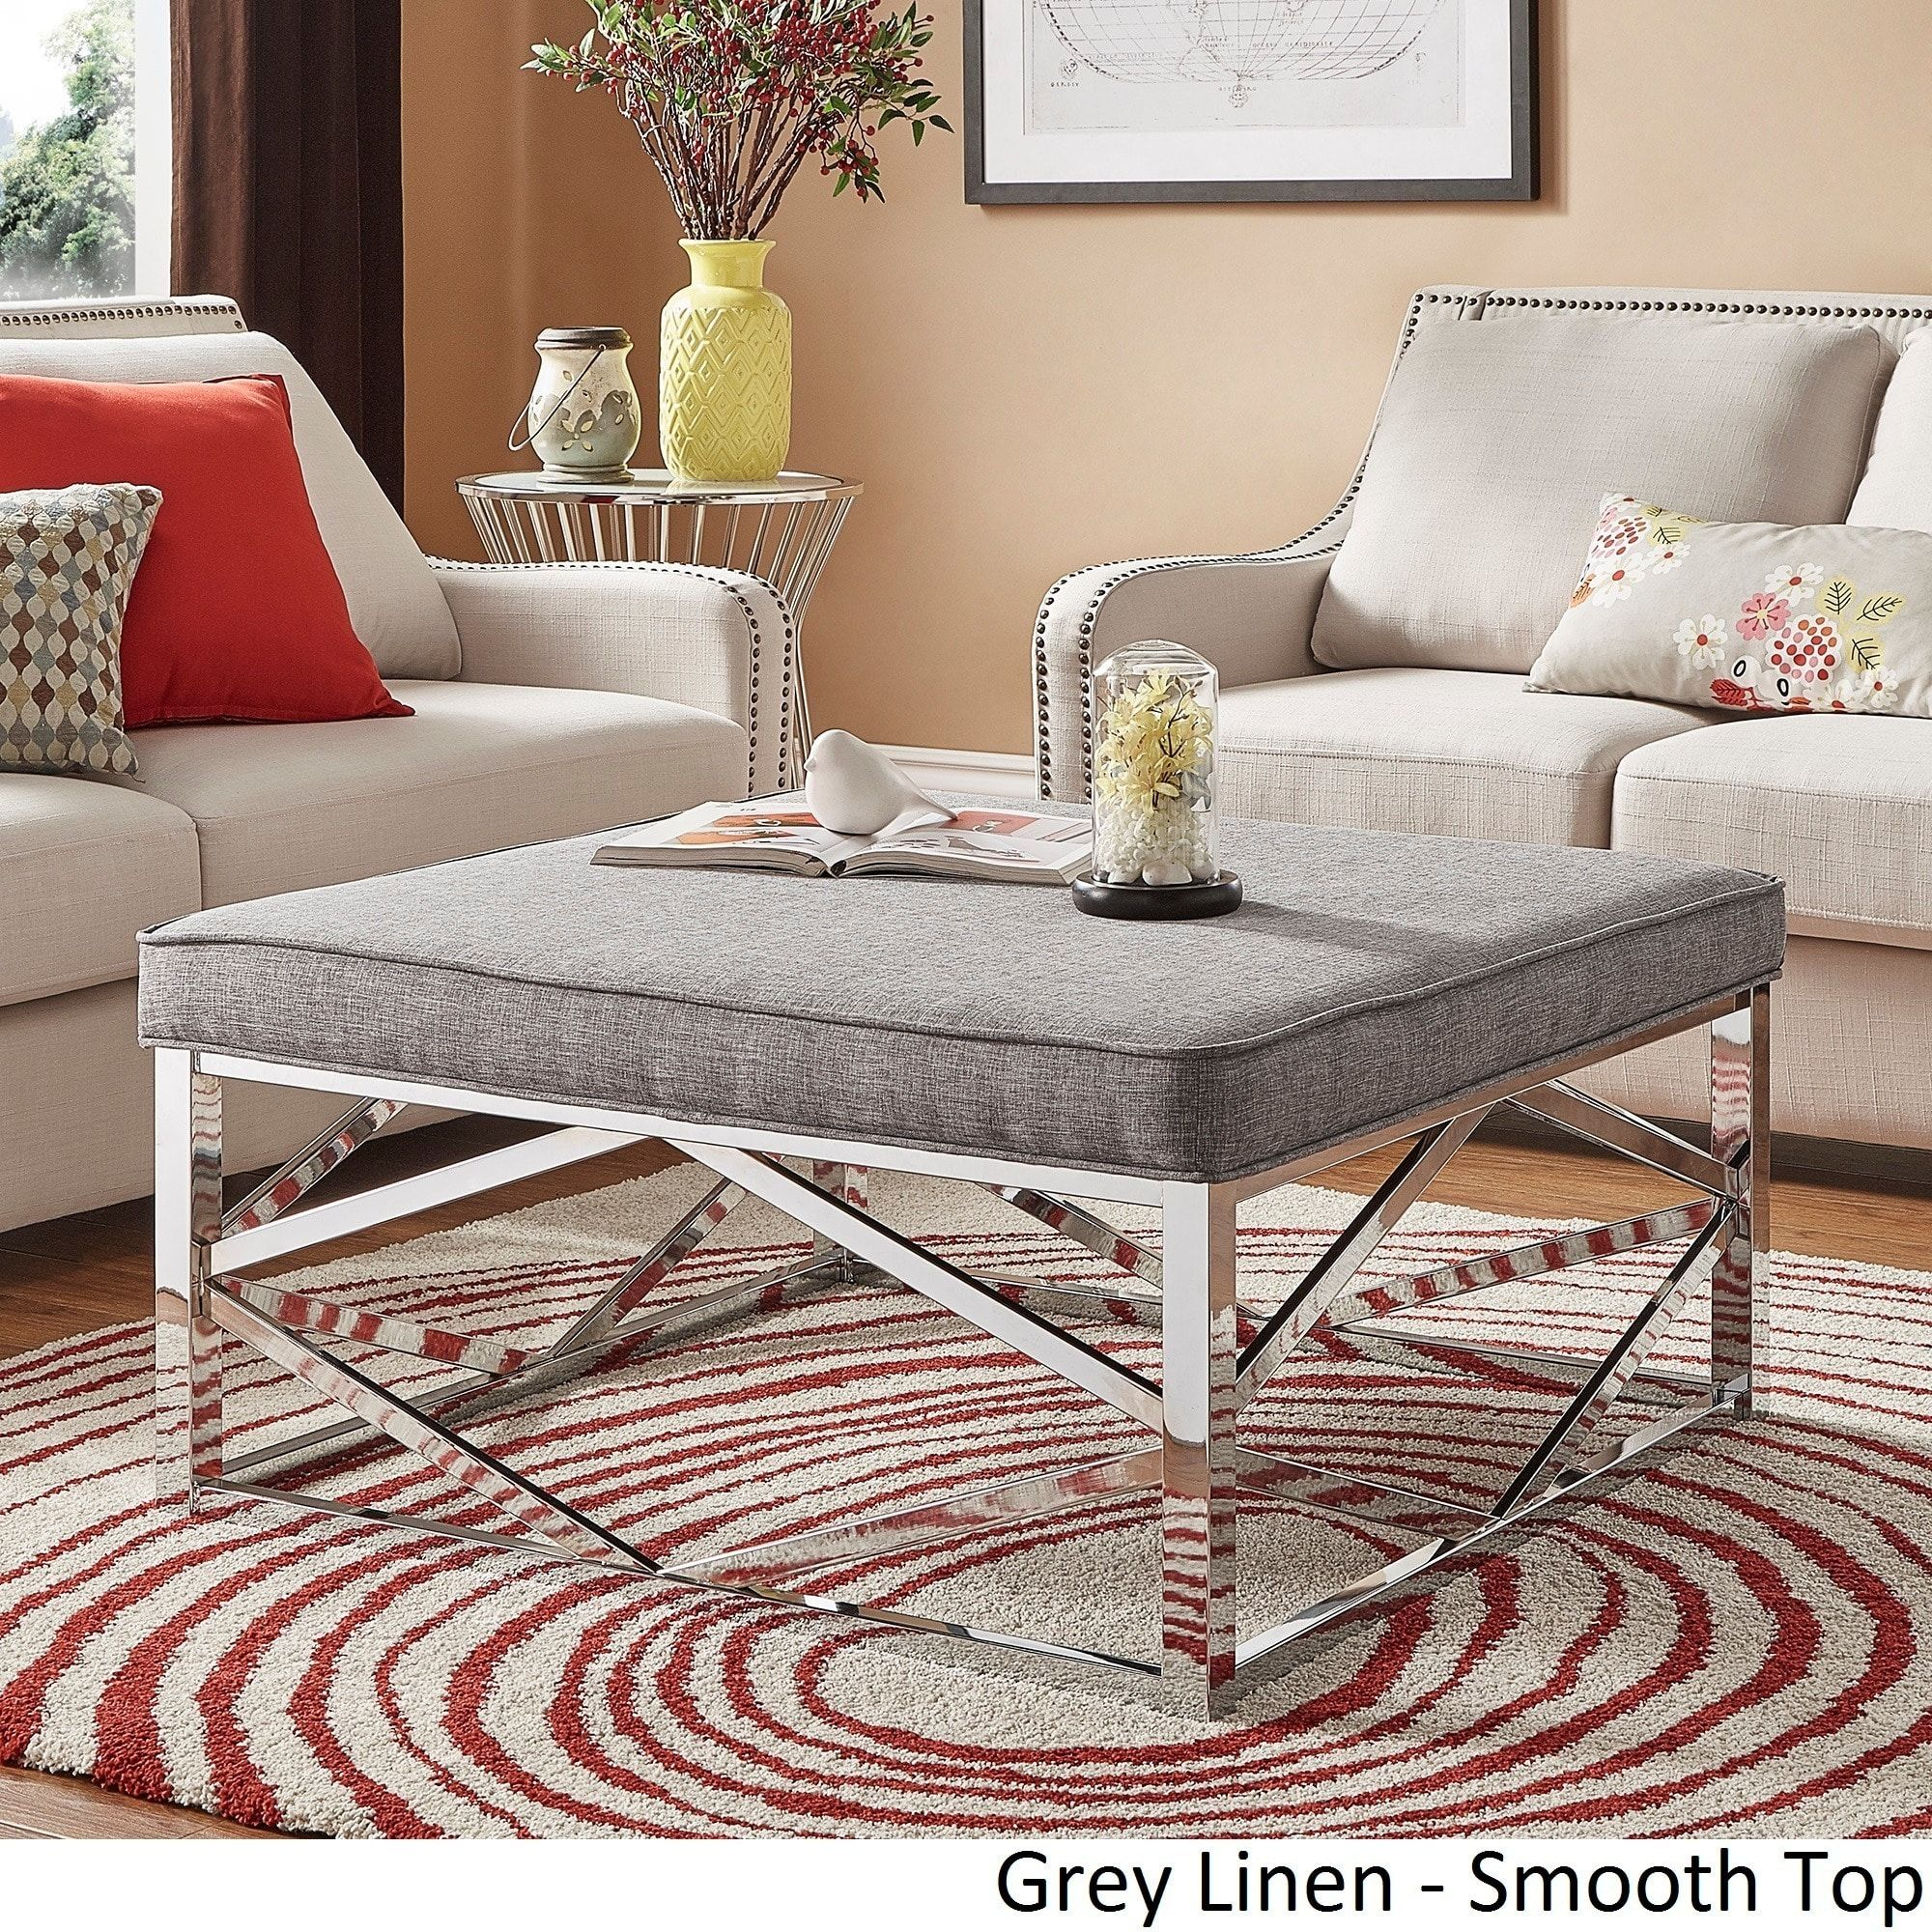 Solene Geometric Base Square Ottoman Coffee Table - Chrome by iNSPIRE Q  Bold ([Beige Linen]- Smooth Top), Brown, Size Medium (Fabric)